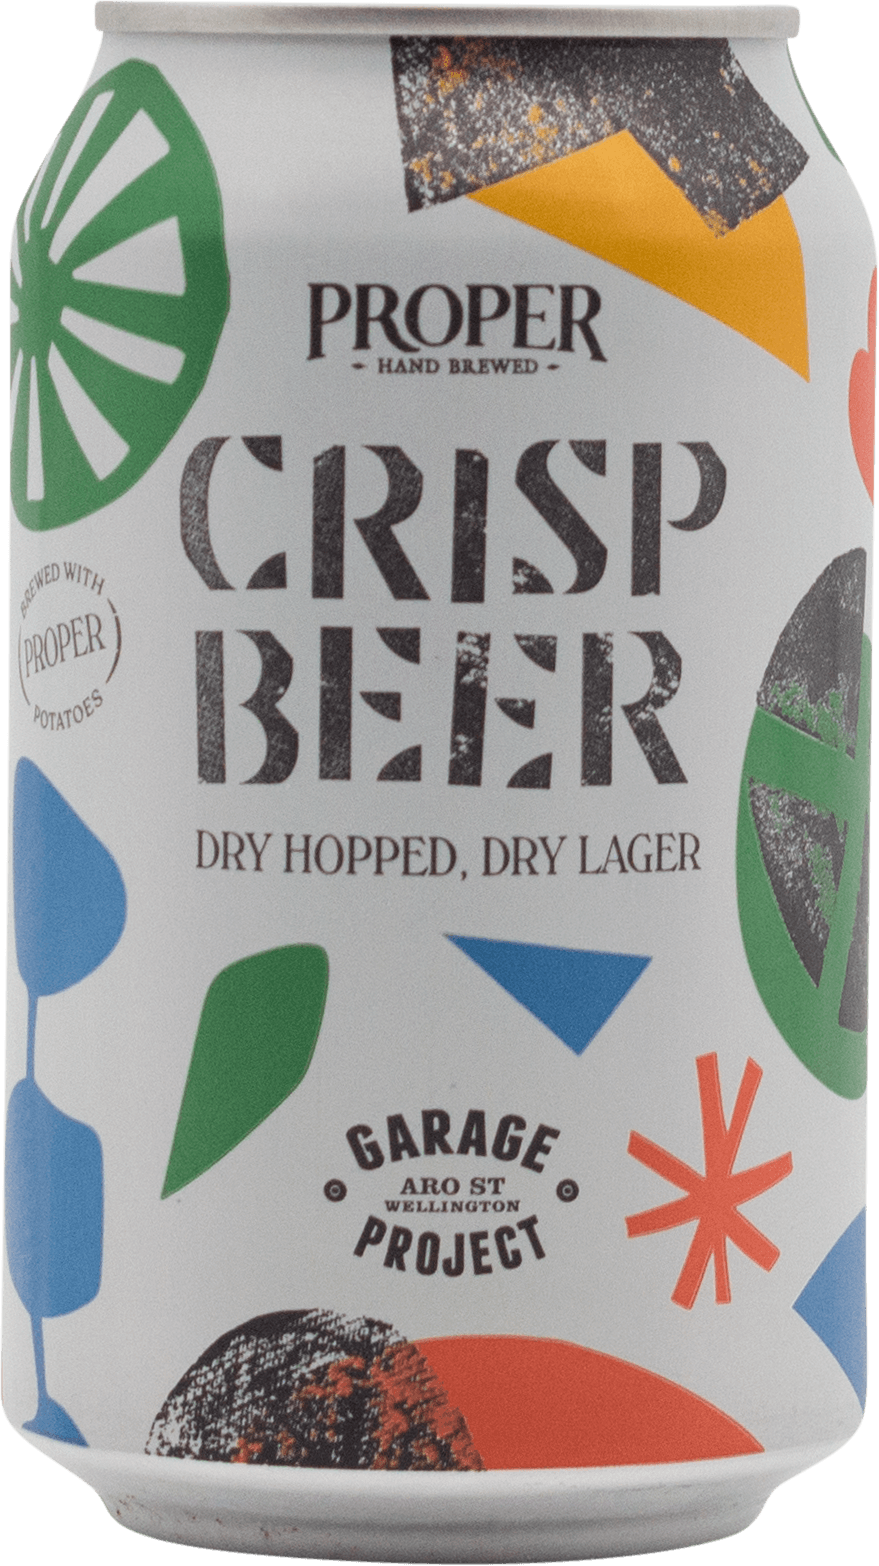 Garage Project Proper Crisp Beer